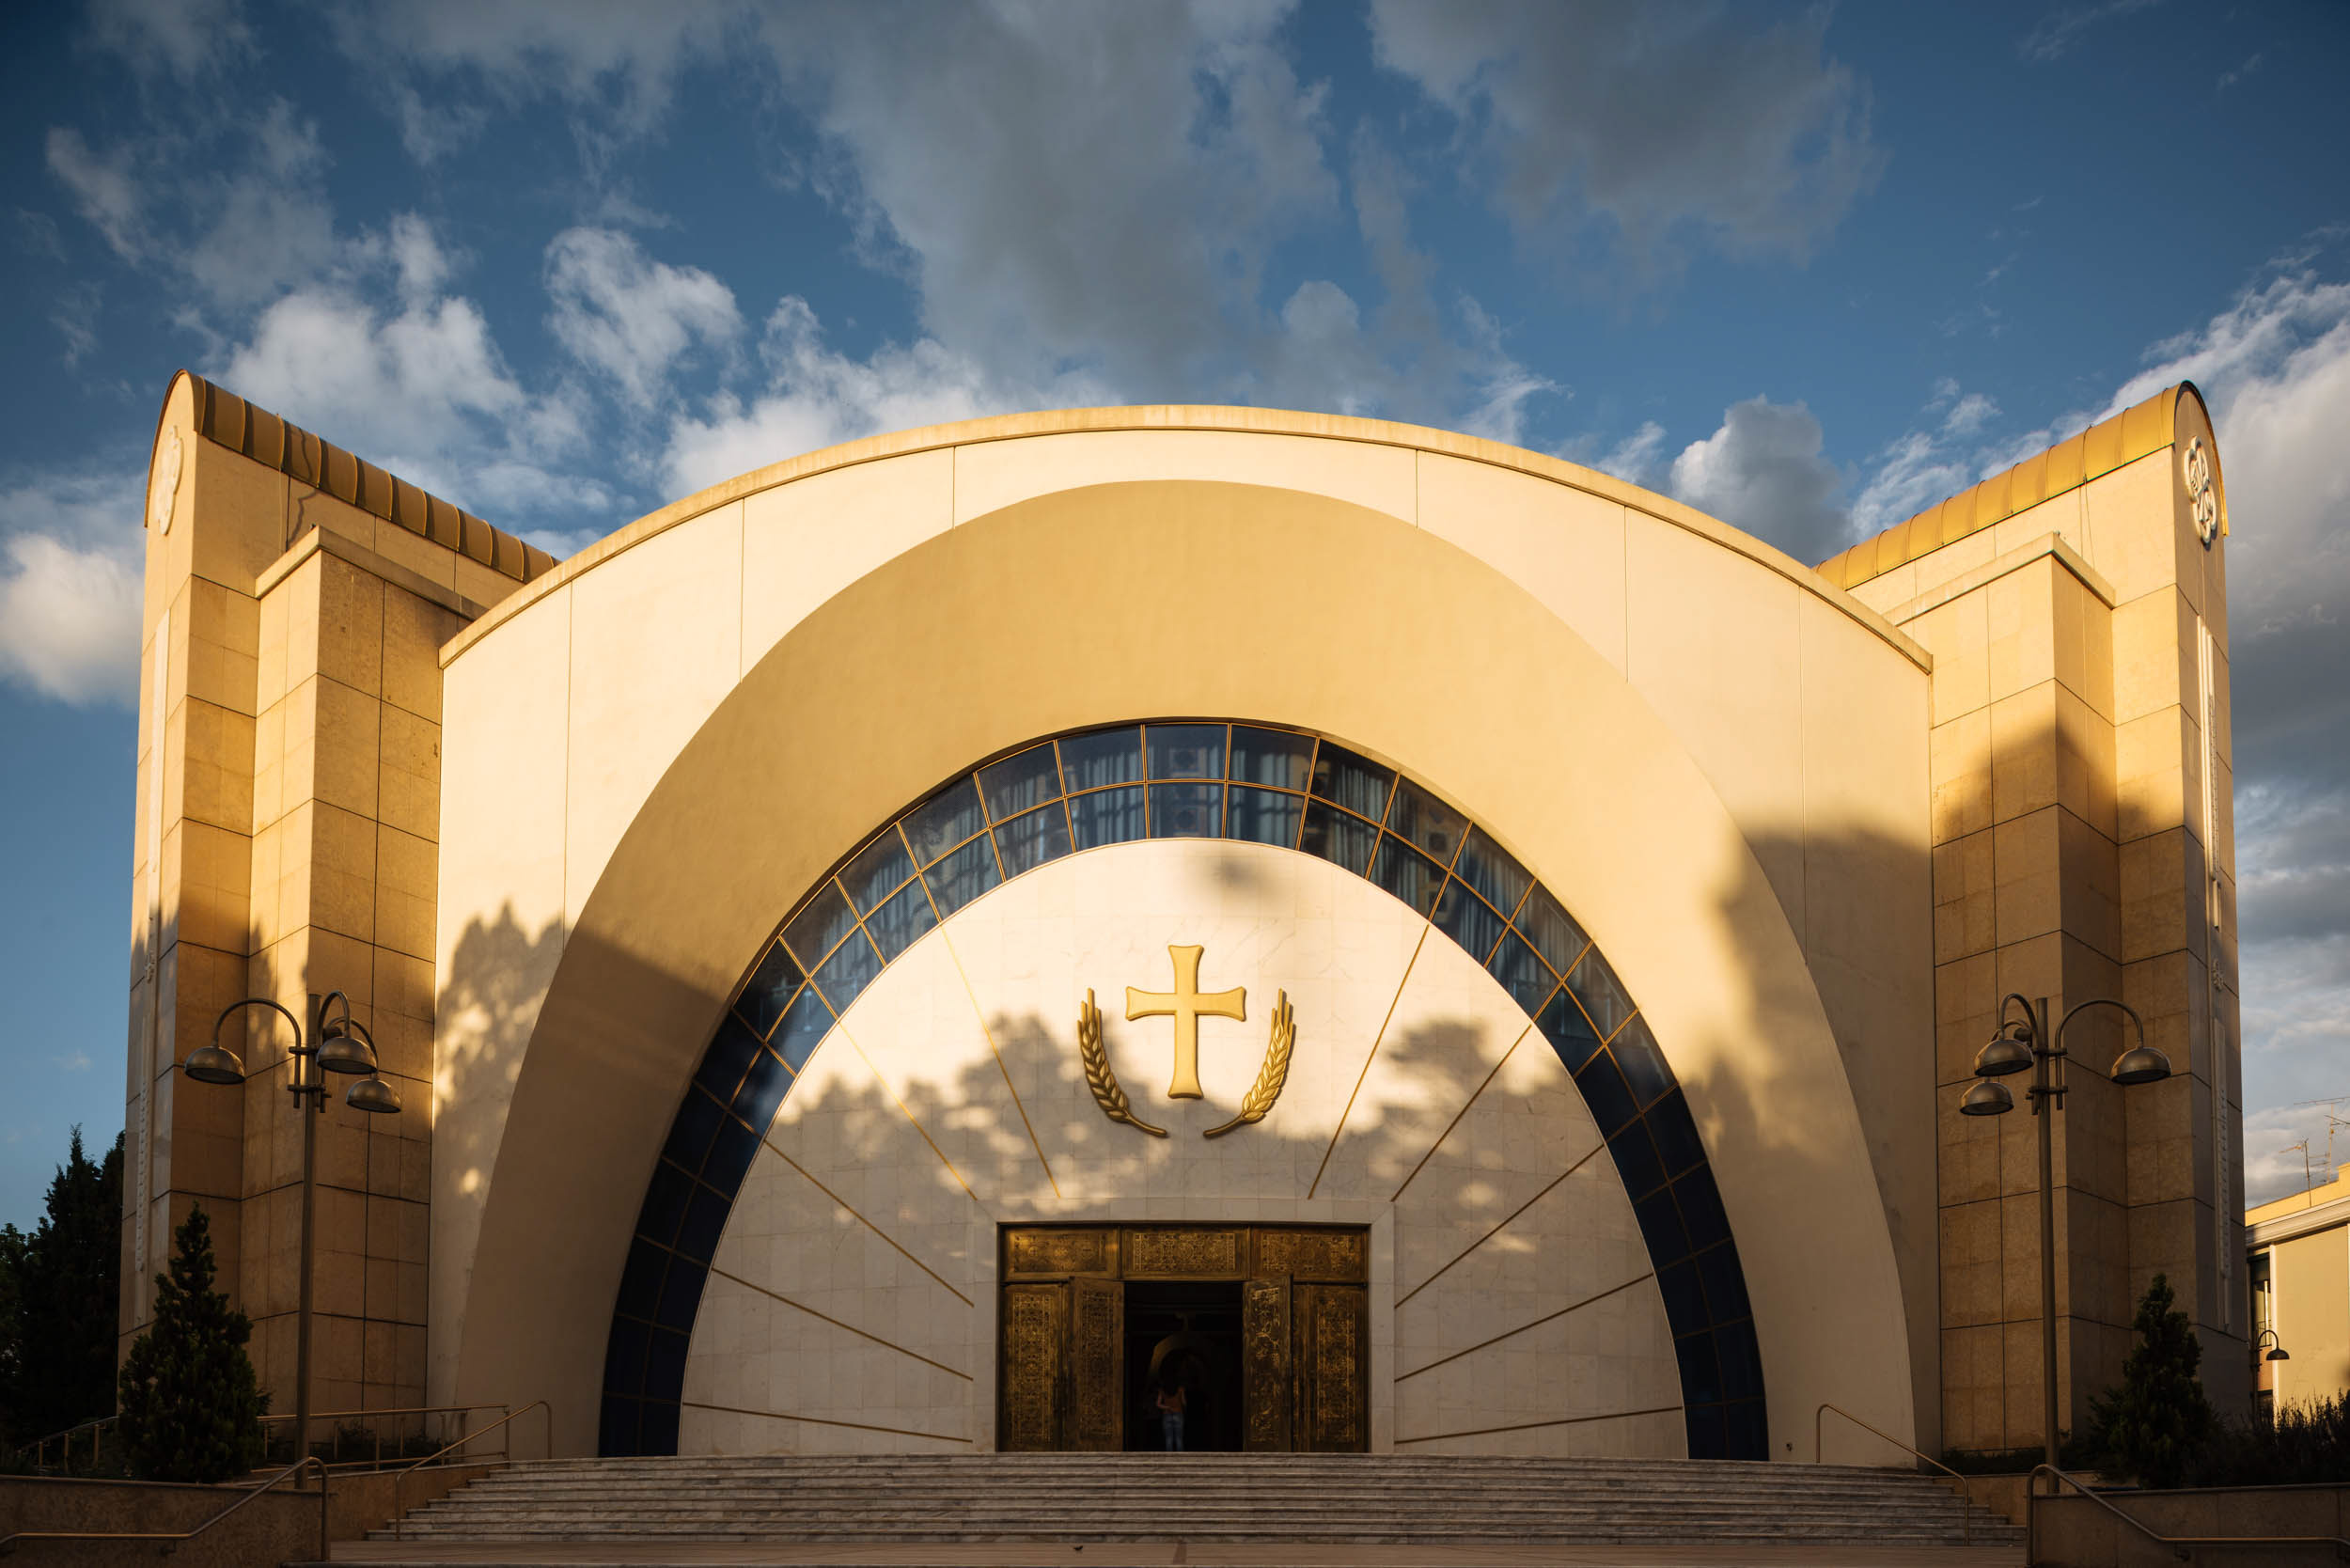 exterior-cathedral-orthodox-christian-architecture-tirana-albania